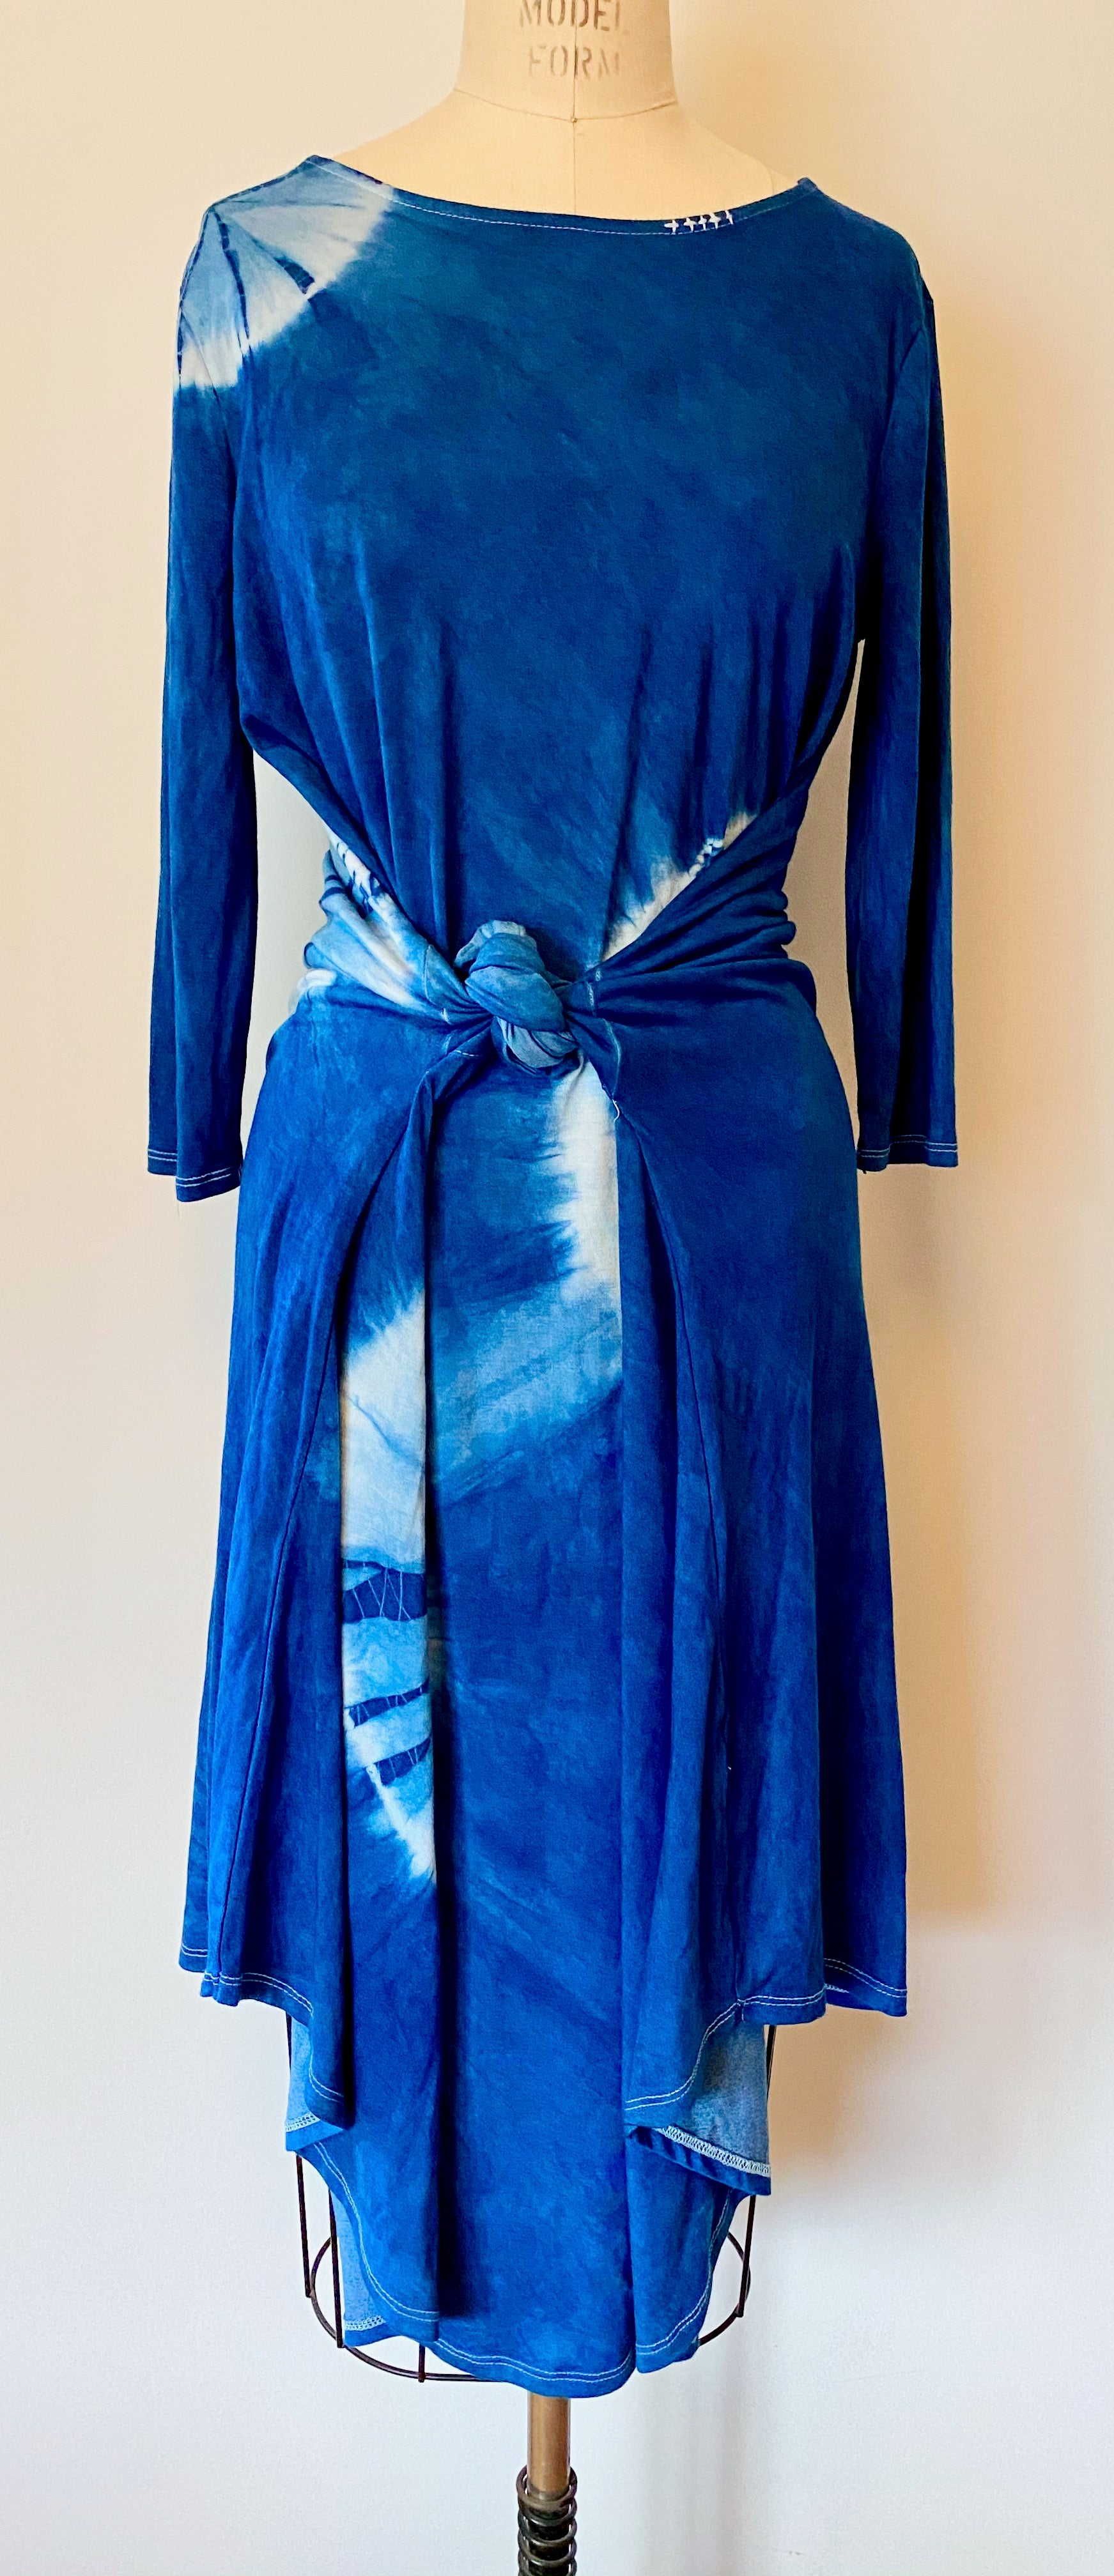 This is a full length photo of the shibori dress in blue eclipse. It's hand dyed using indigo.